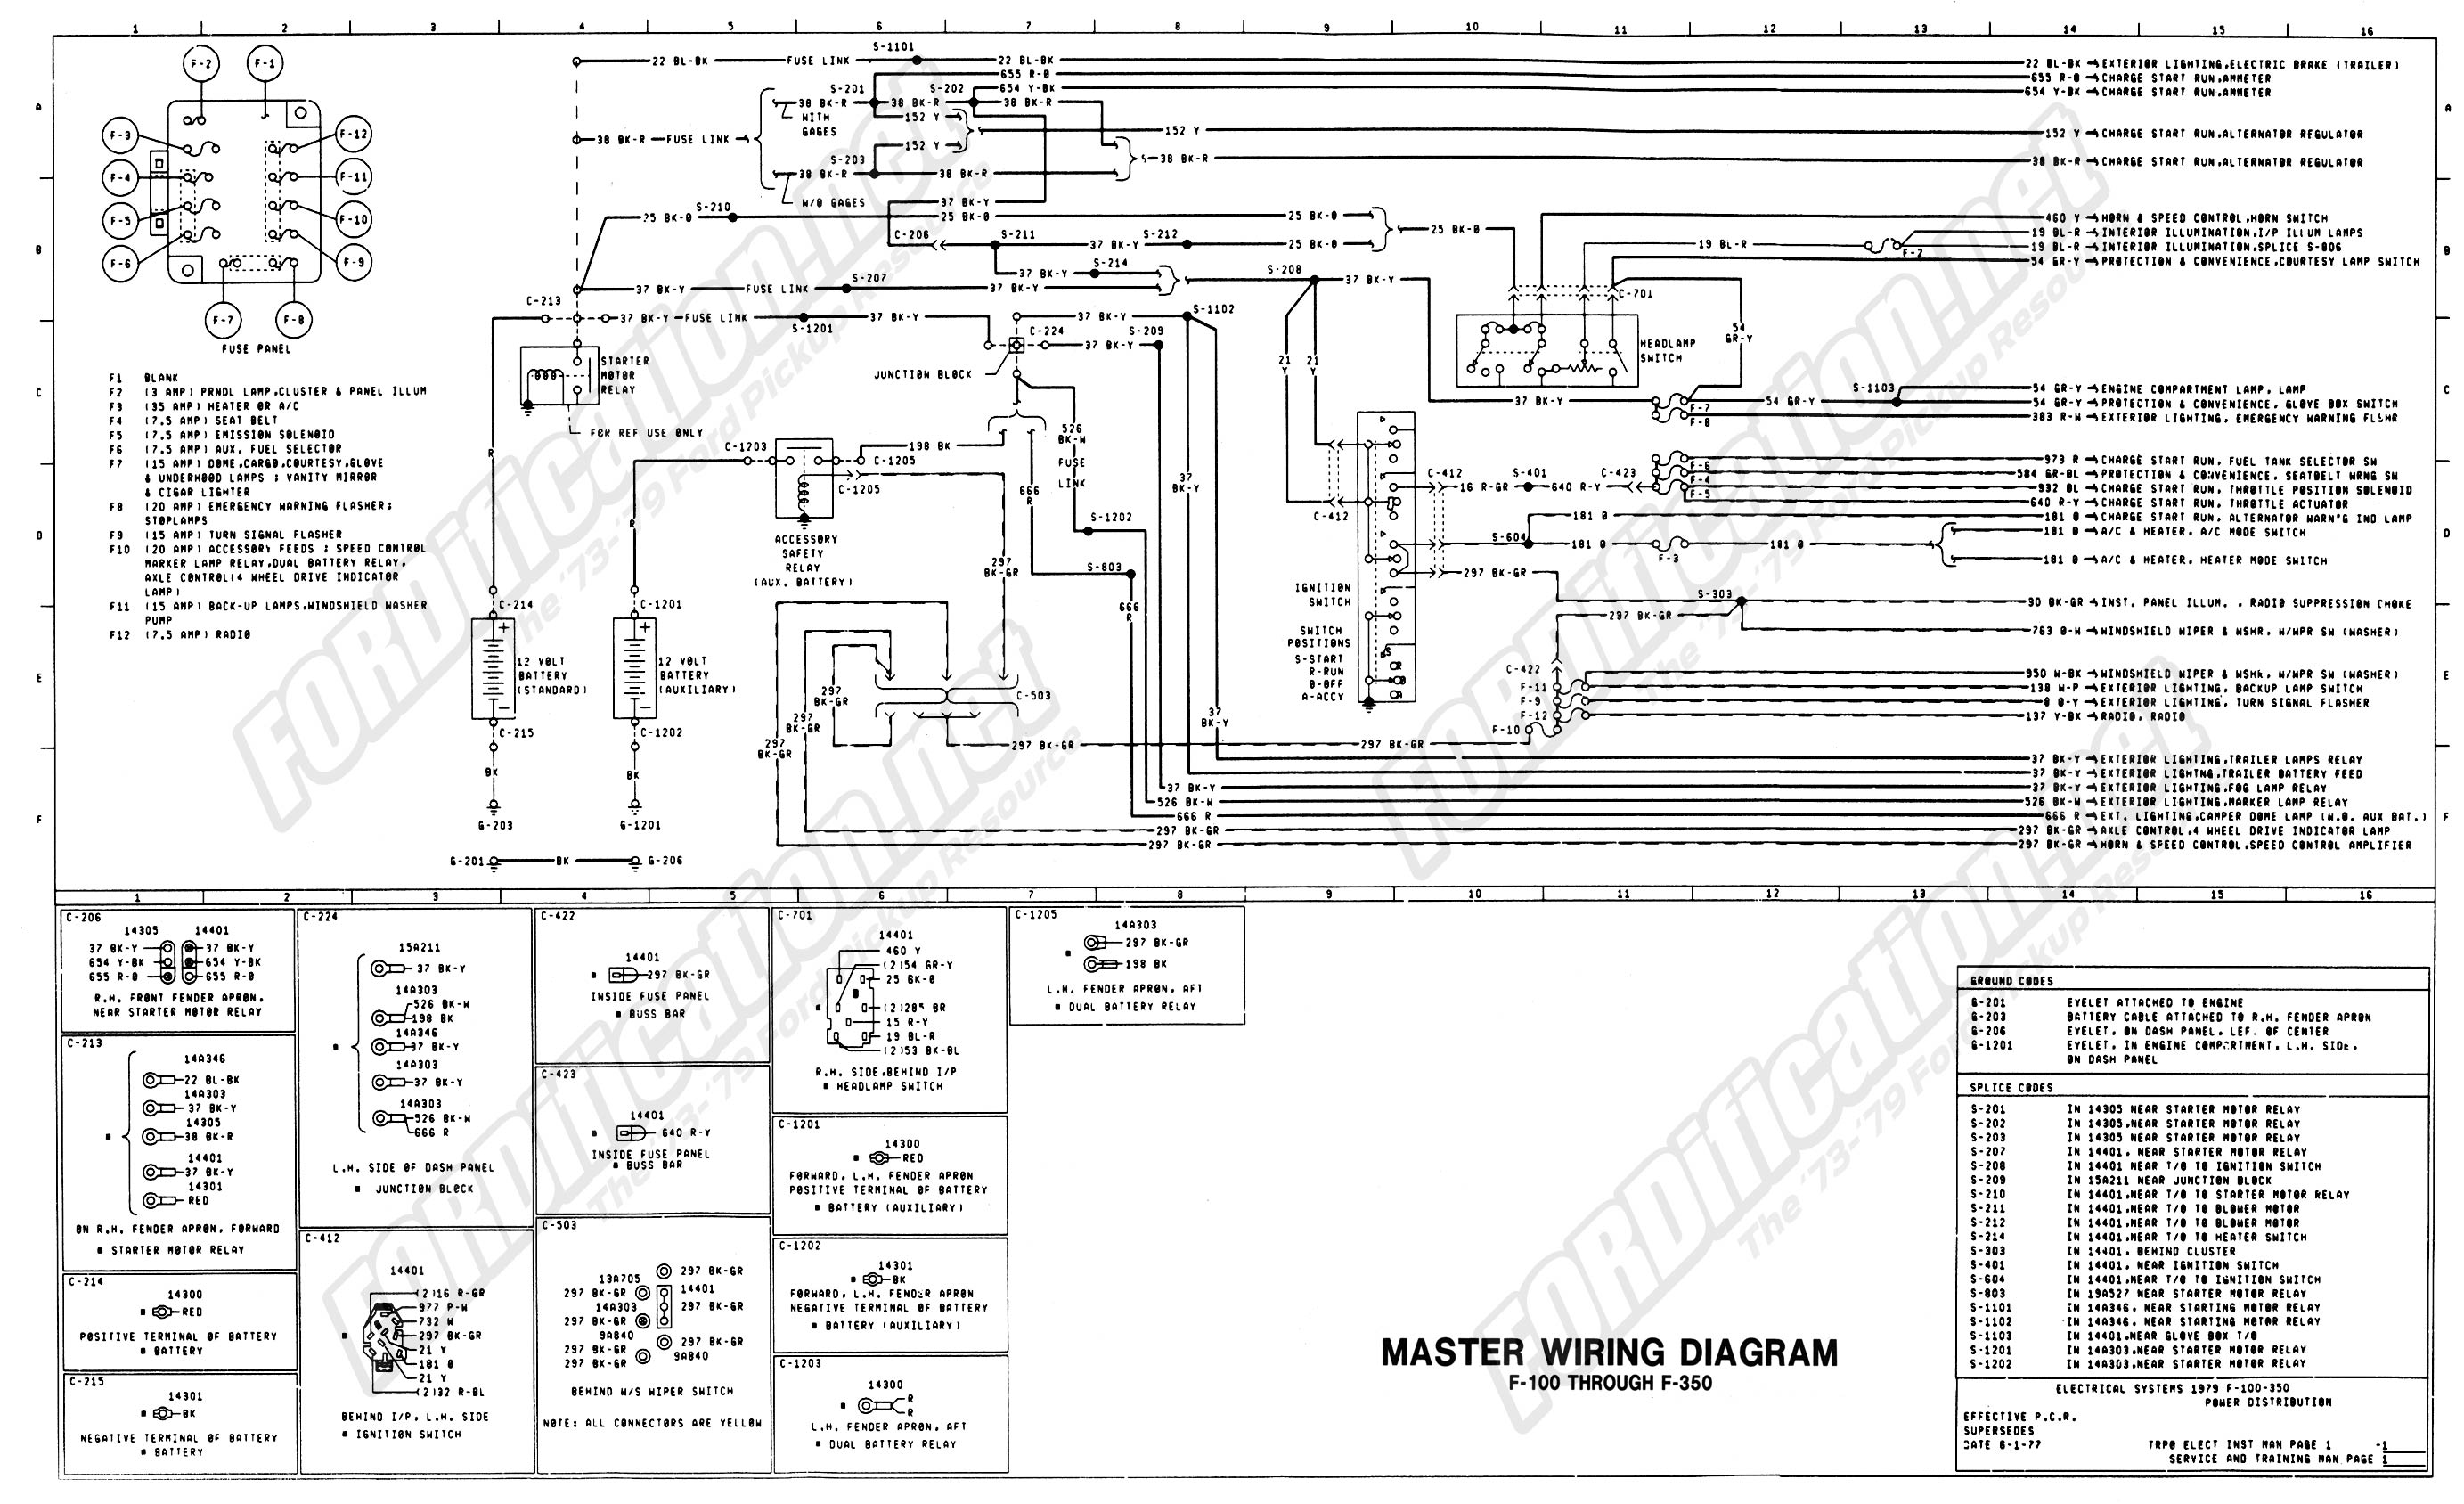 wiring_79master_1of9 1973 1979 ford truck wiring diagrams & schematics fordification net 1979 ford bronco fuse box diagram at readyjetset.co